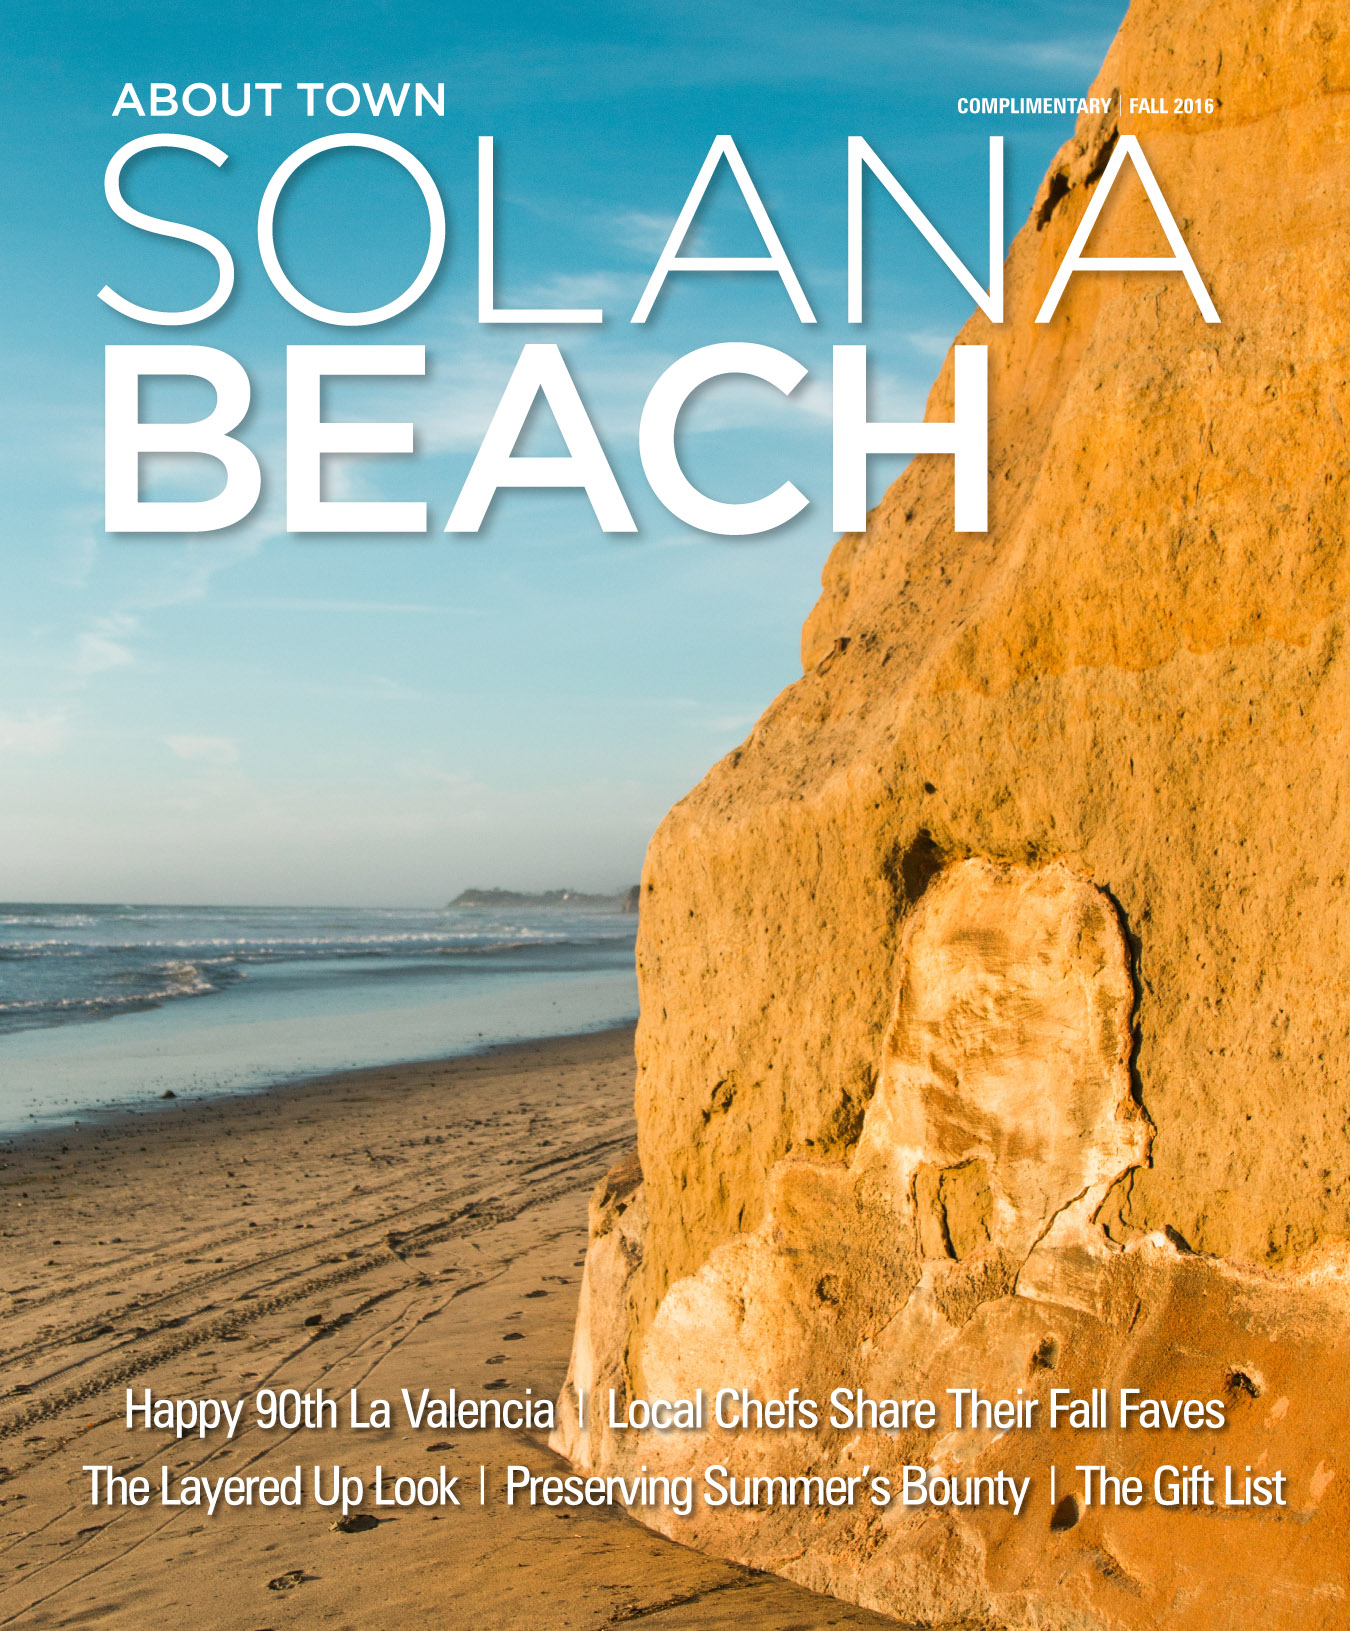 About Town Magazines - Solana Beach